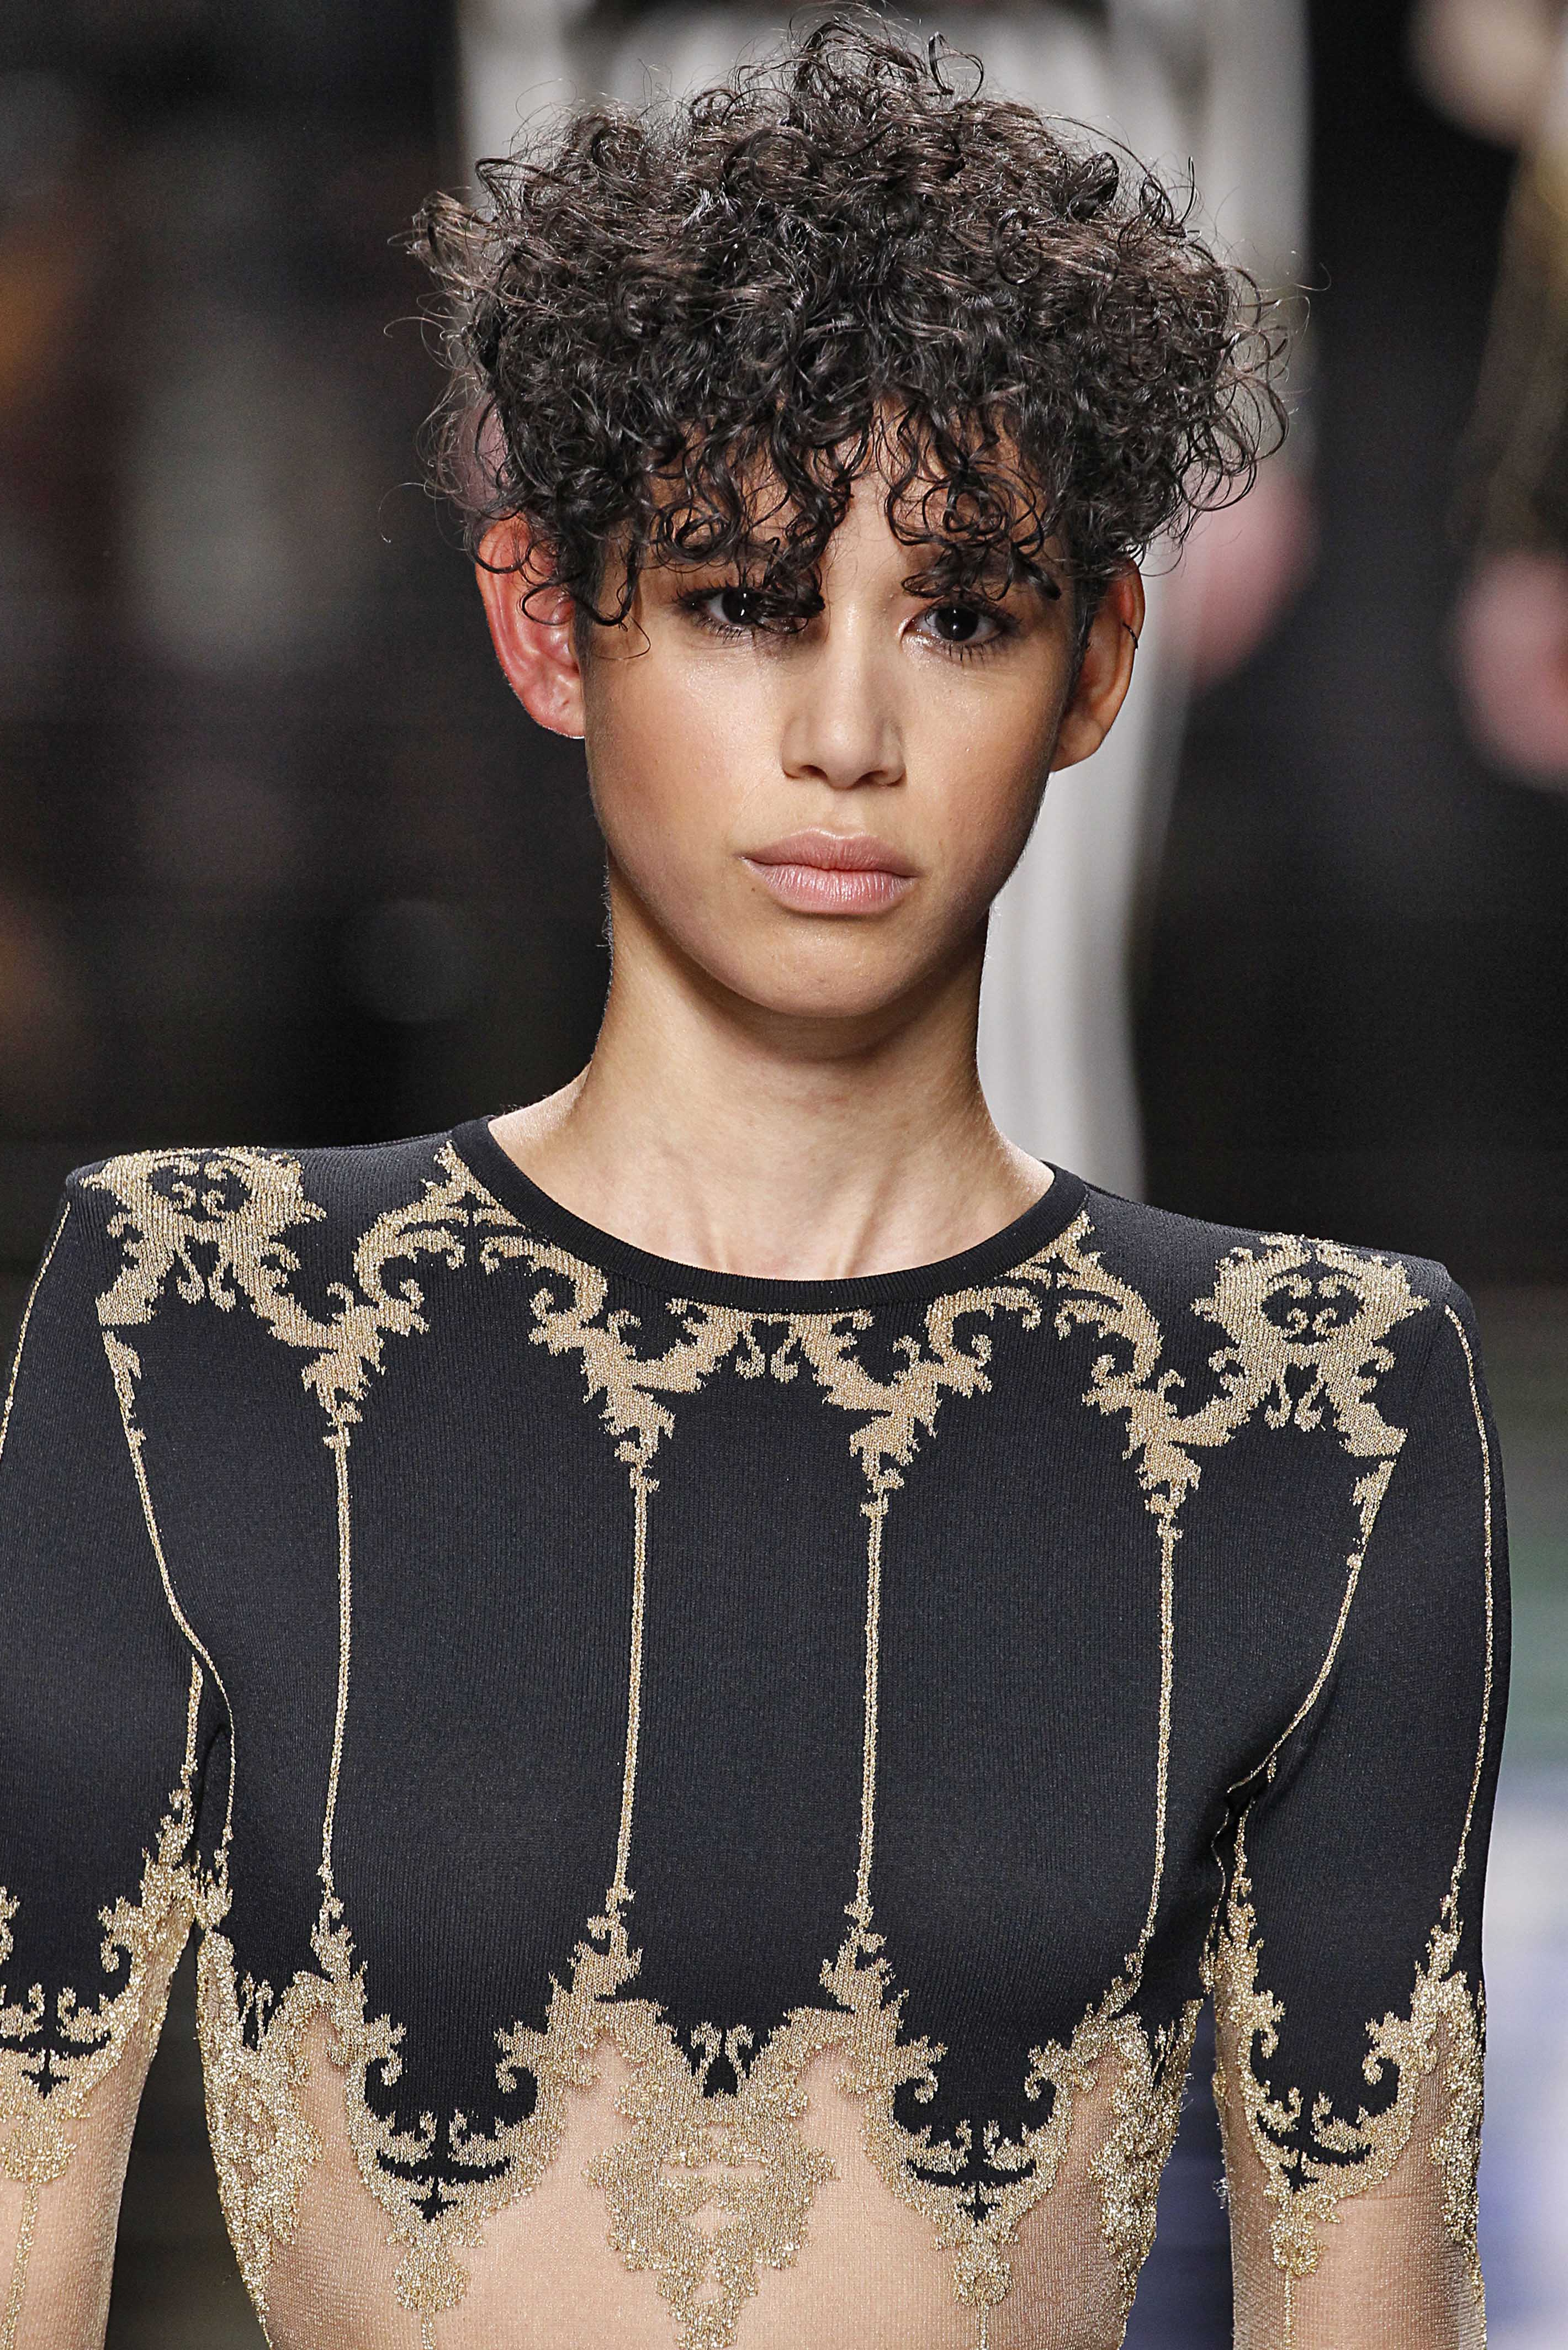 9 Short Edgy Haircuts To Inspire Your New Look (Plus A Tutorial!) Pertaining To Edgy Short Haircuts (View 10 of 25)